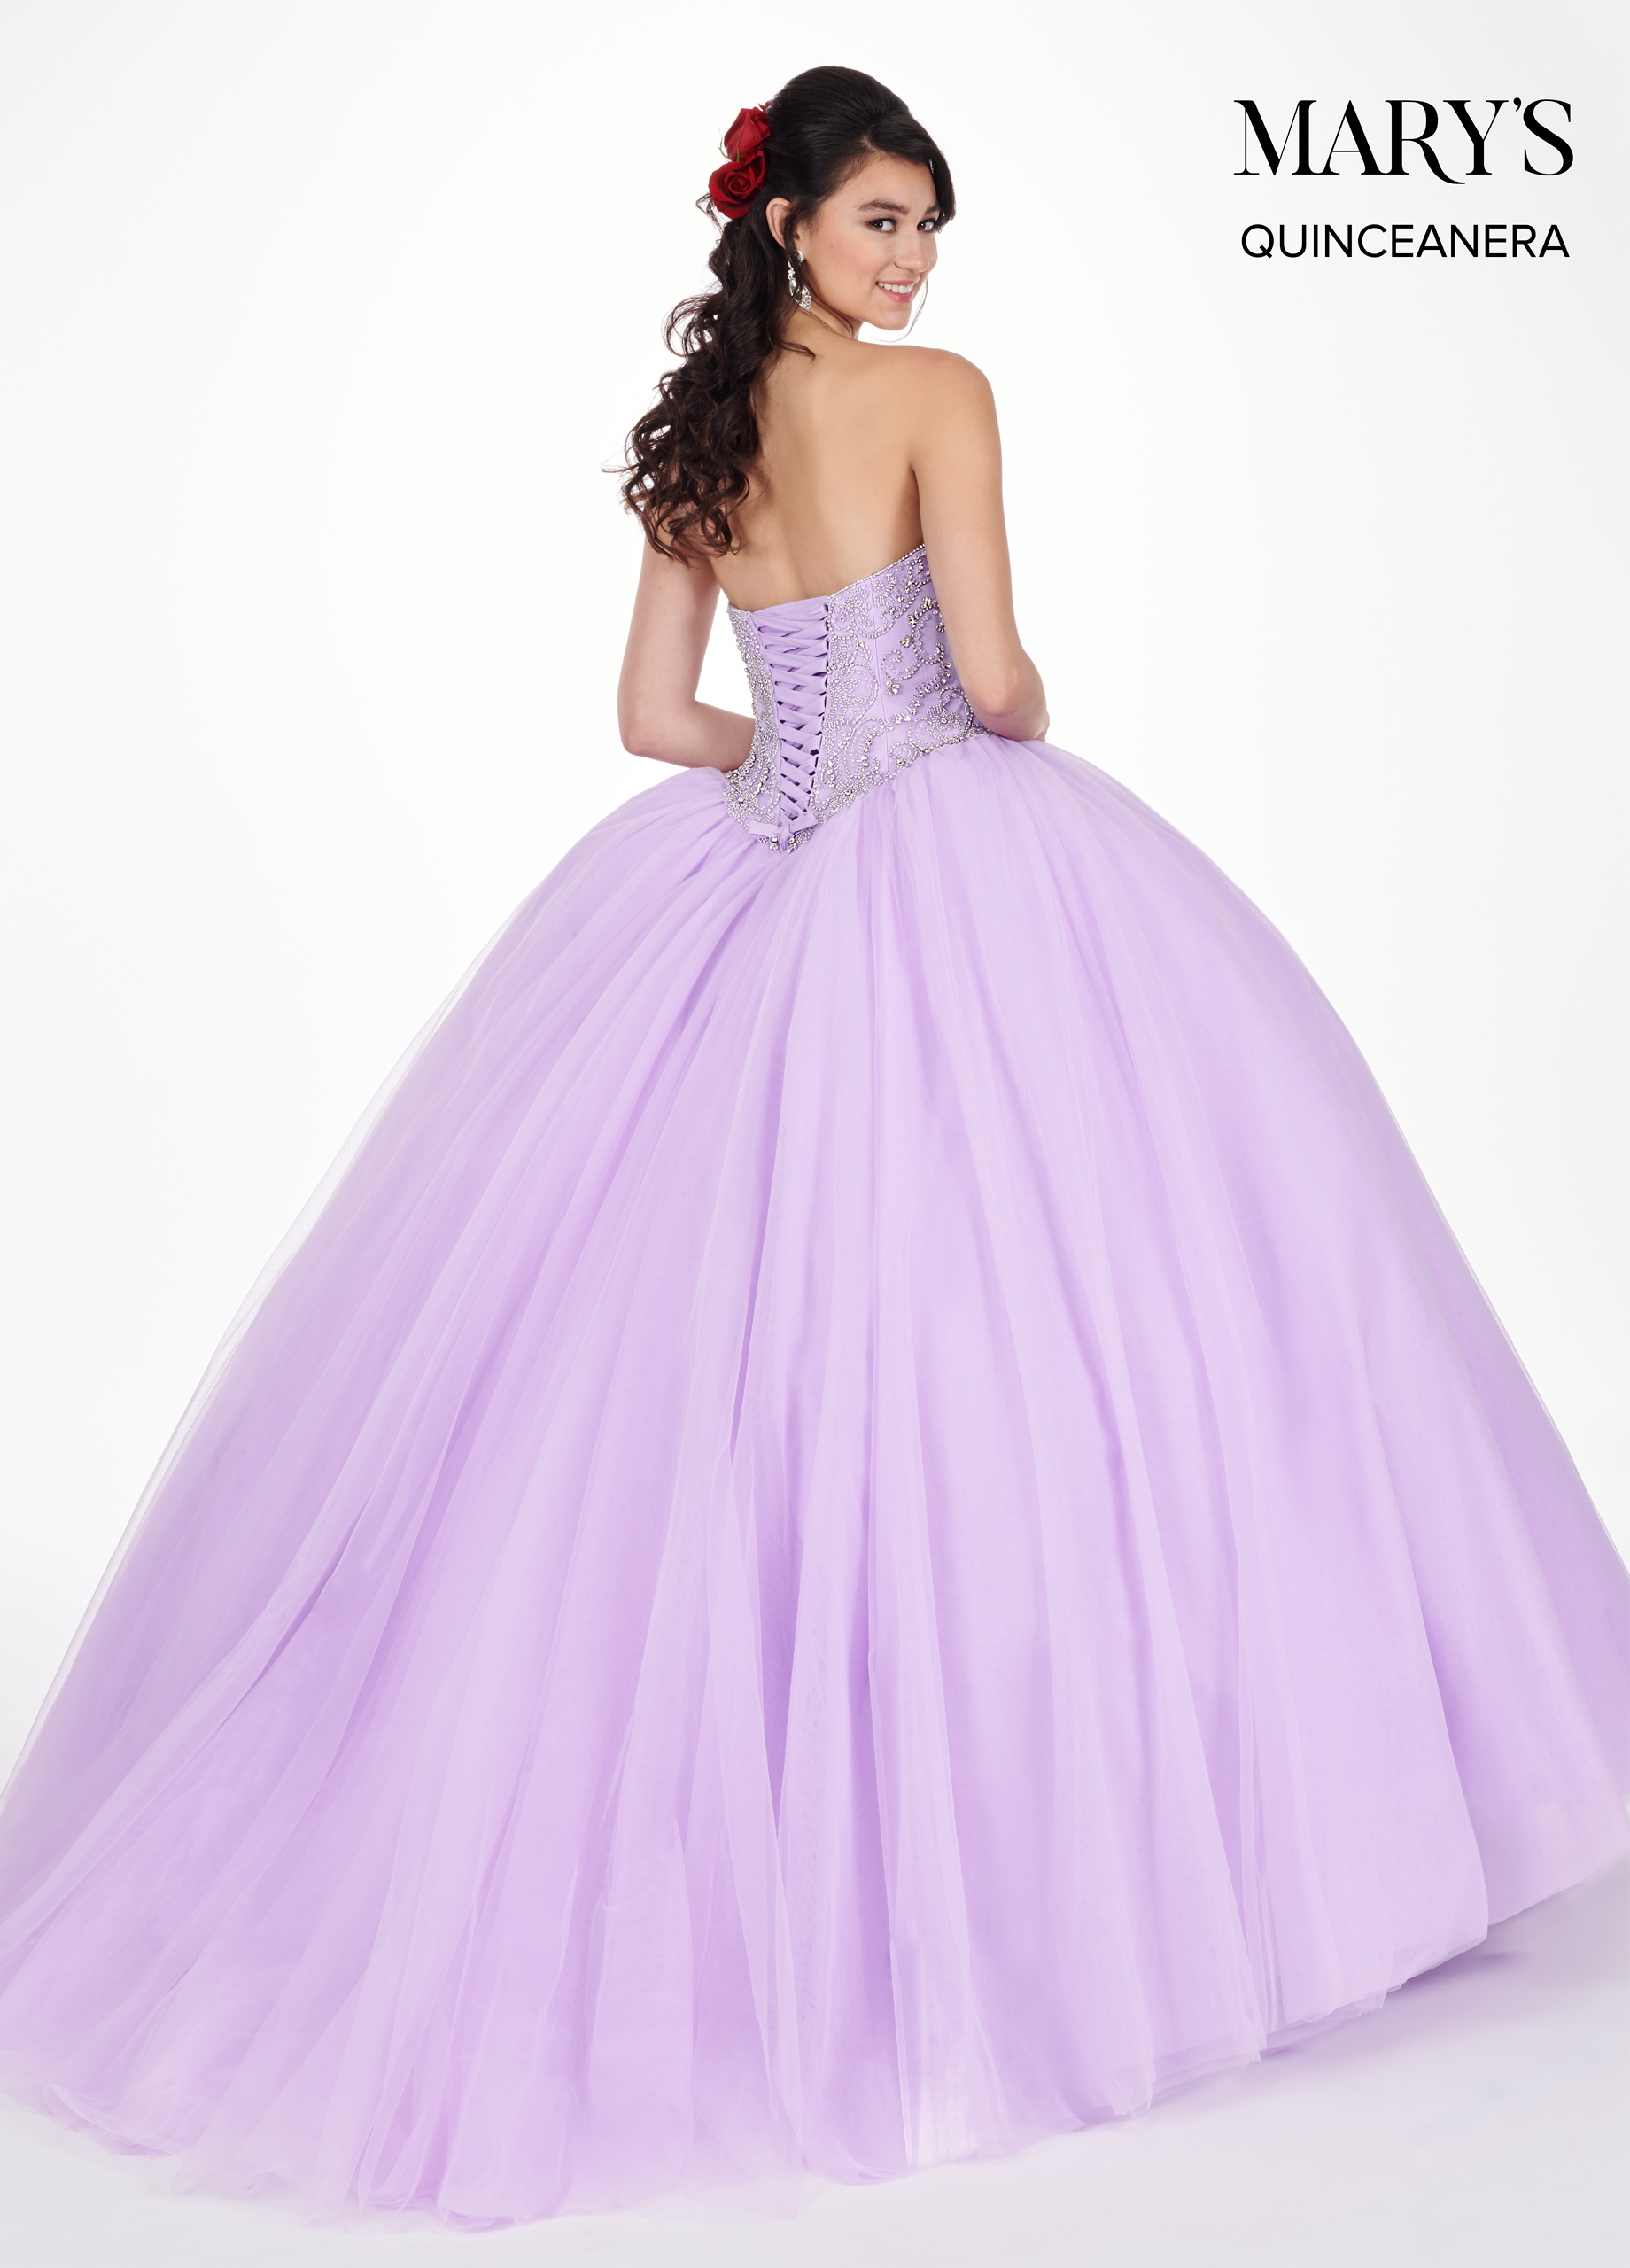 Marys Quinceanera Dresses | Mary's Quinceanera | Style - MQ1033